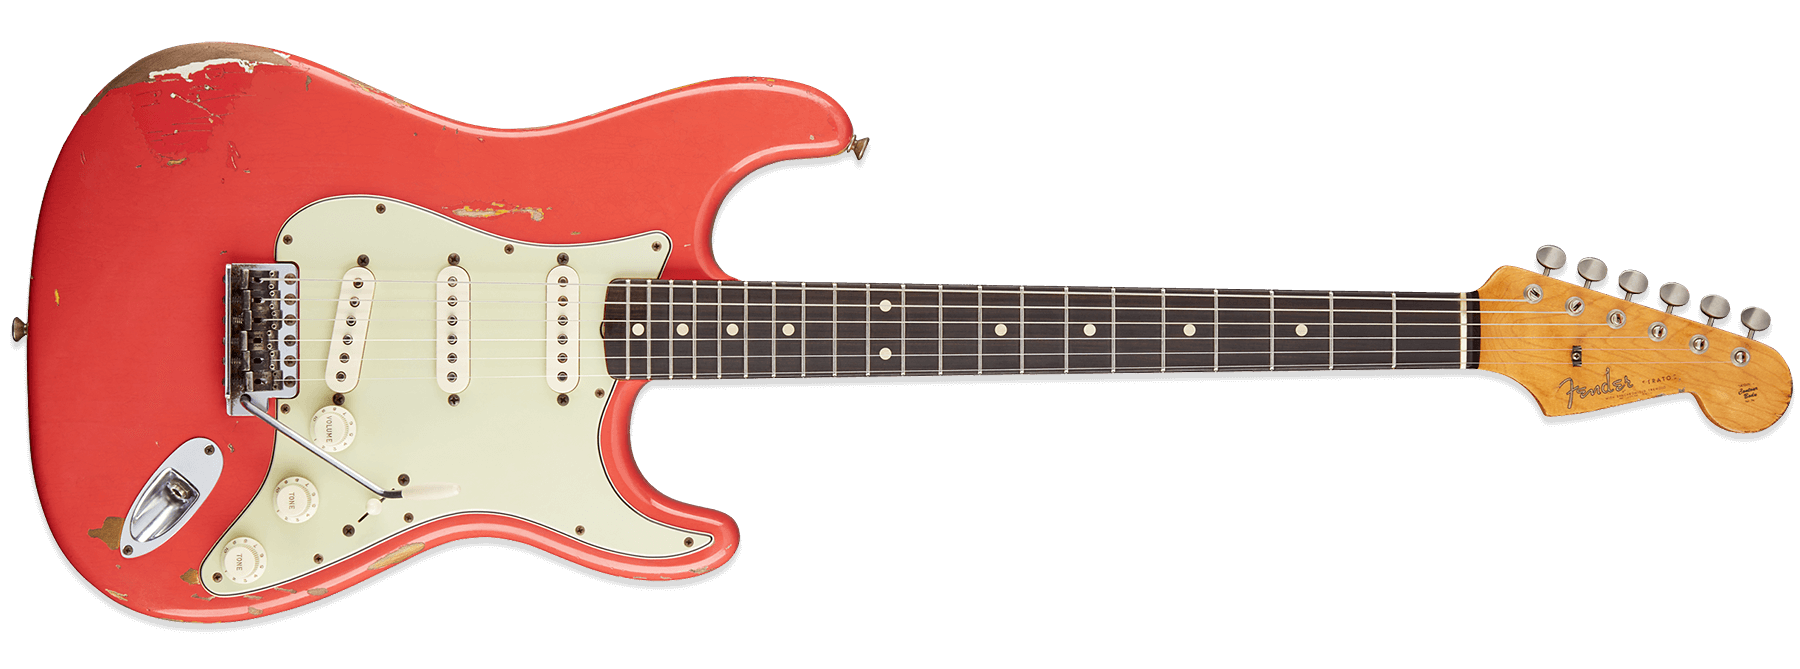 Fender Custom Shop Gary Moore Stratocaster Fiesta Red